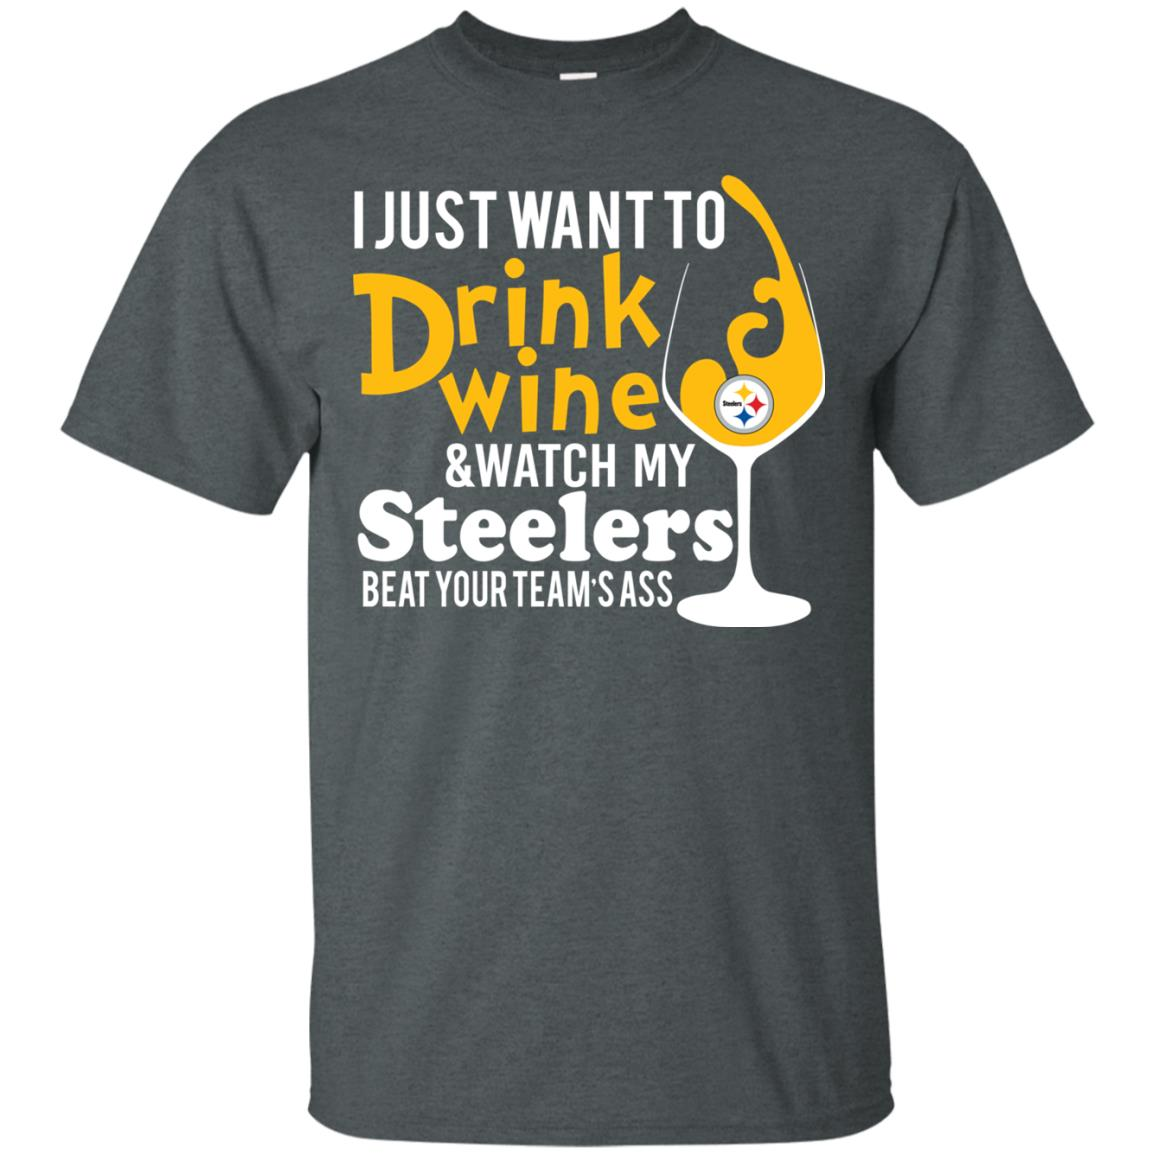 image 536px I just want to drink wine & watch my Steelers beat your team's ass t shirts, hoodies, tank top